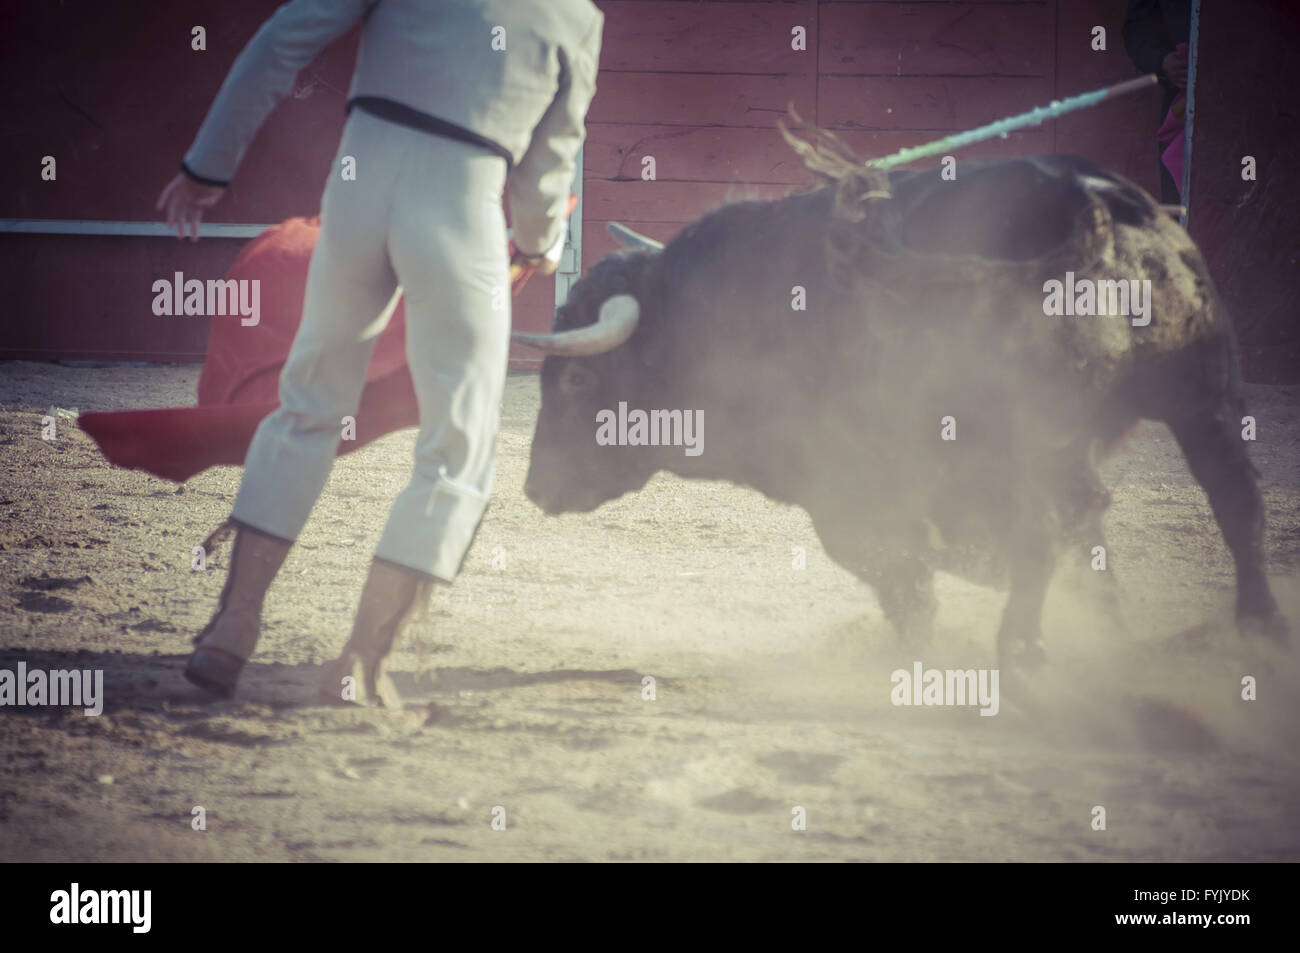 spectacle of bullfighting, where a bull fighting a bullfighter Spanish tradition - Stock Image